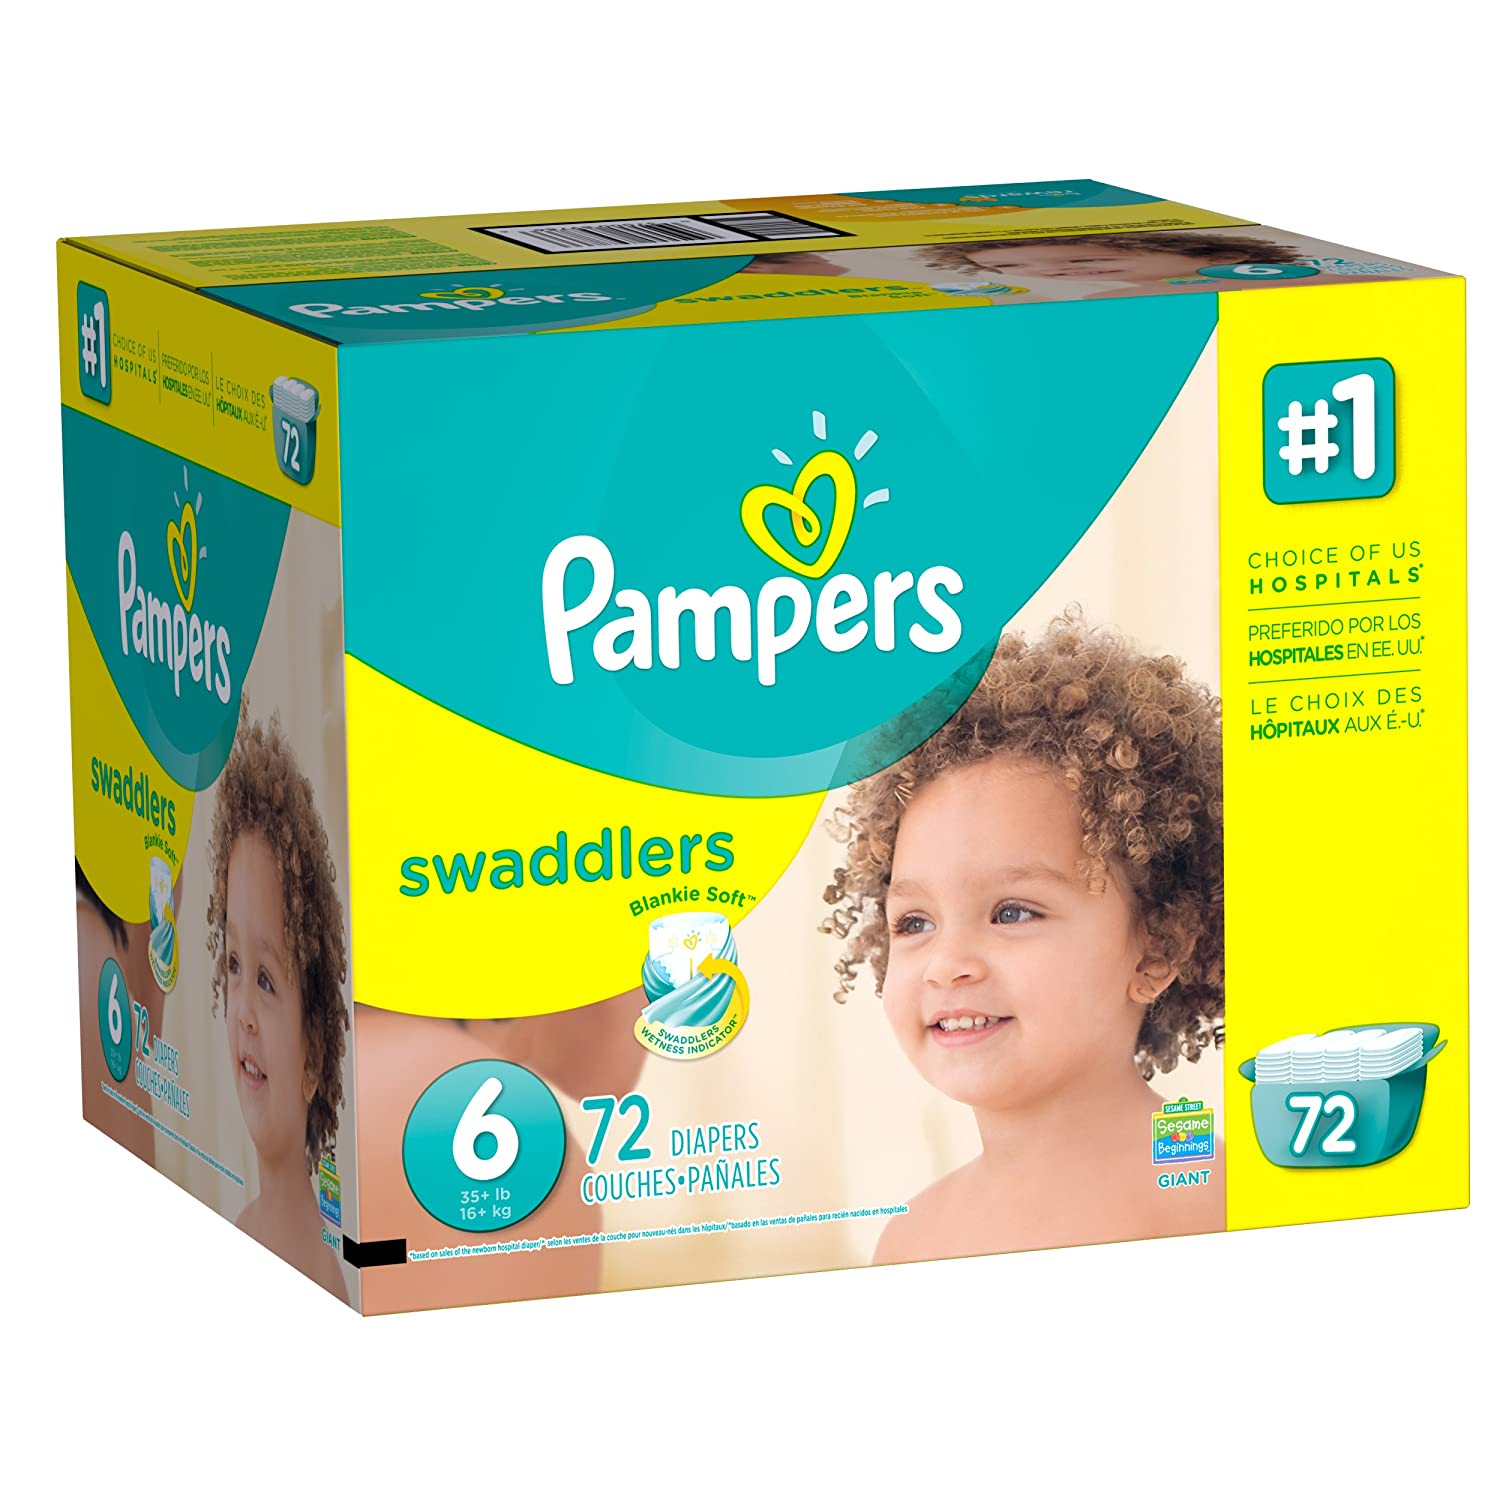 Amazon.com: Pampers Swaddlers Diapers Size 6, 72 Count: Health ...